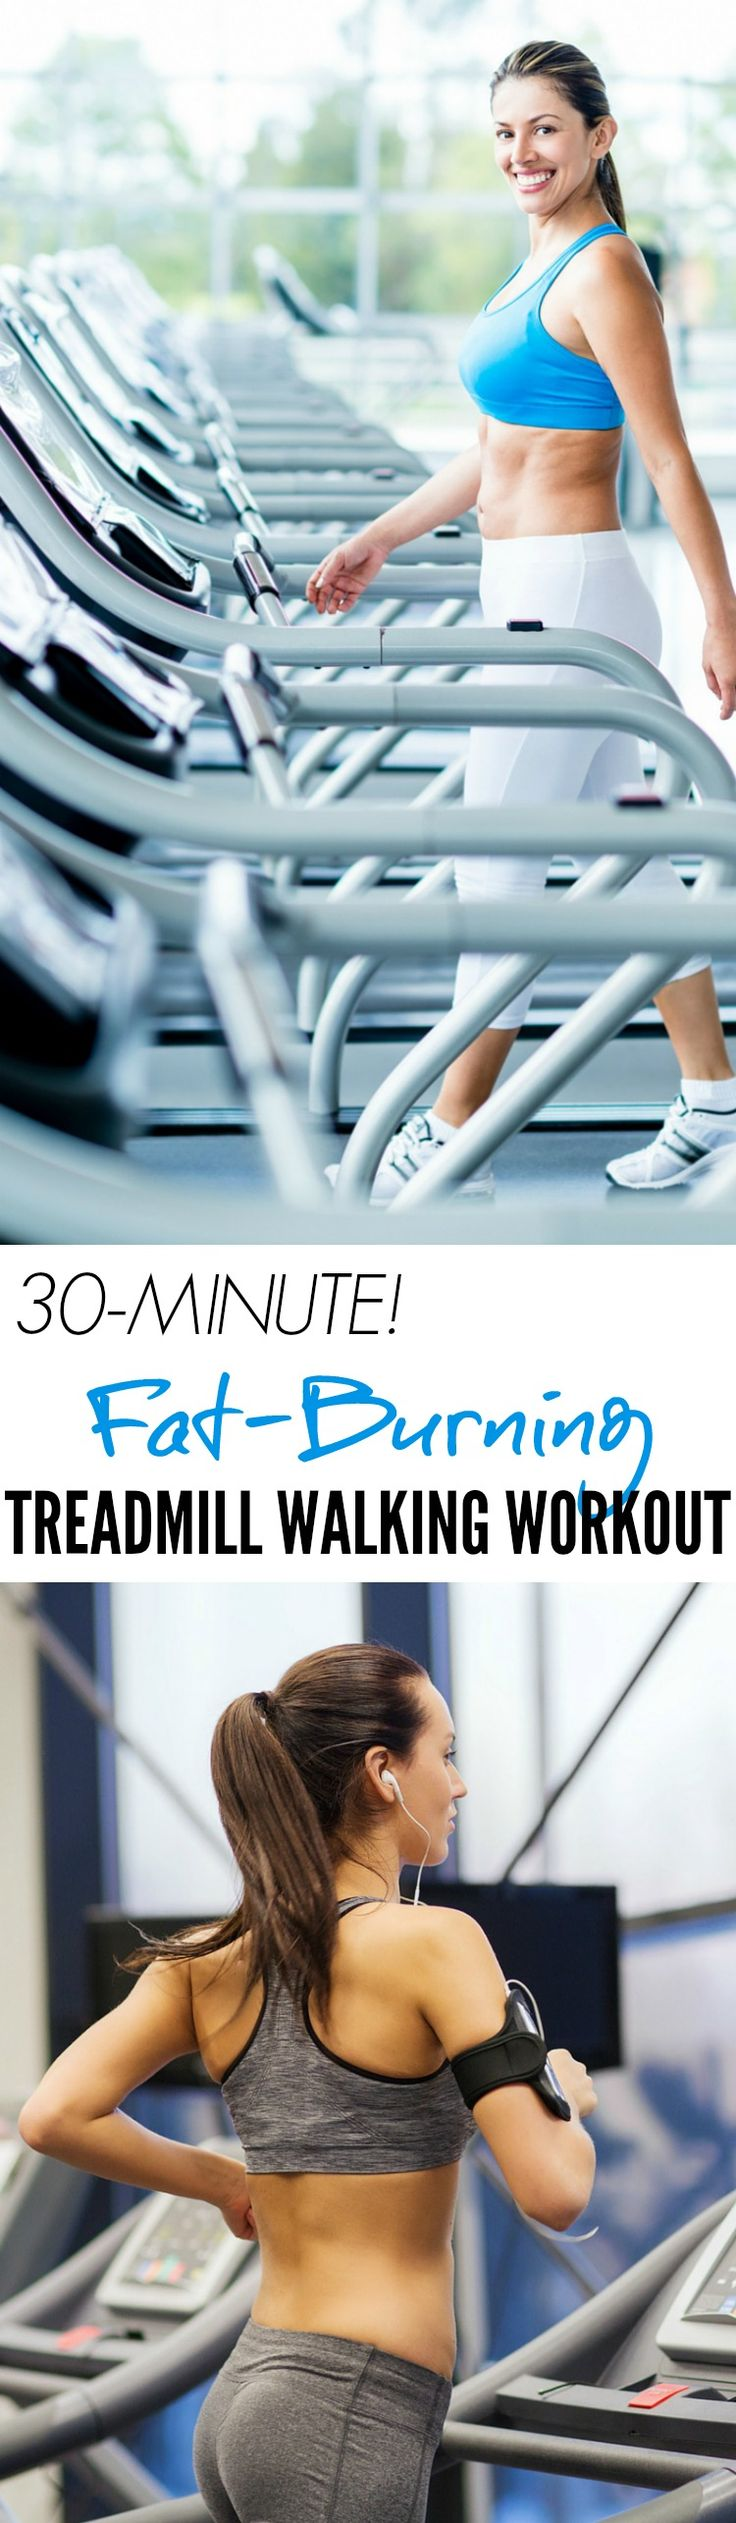 30-Minute Fat-Blasting Treadmill Walking Workout ...